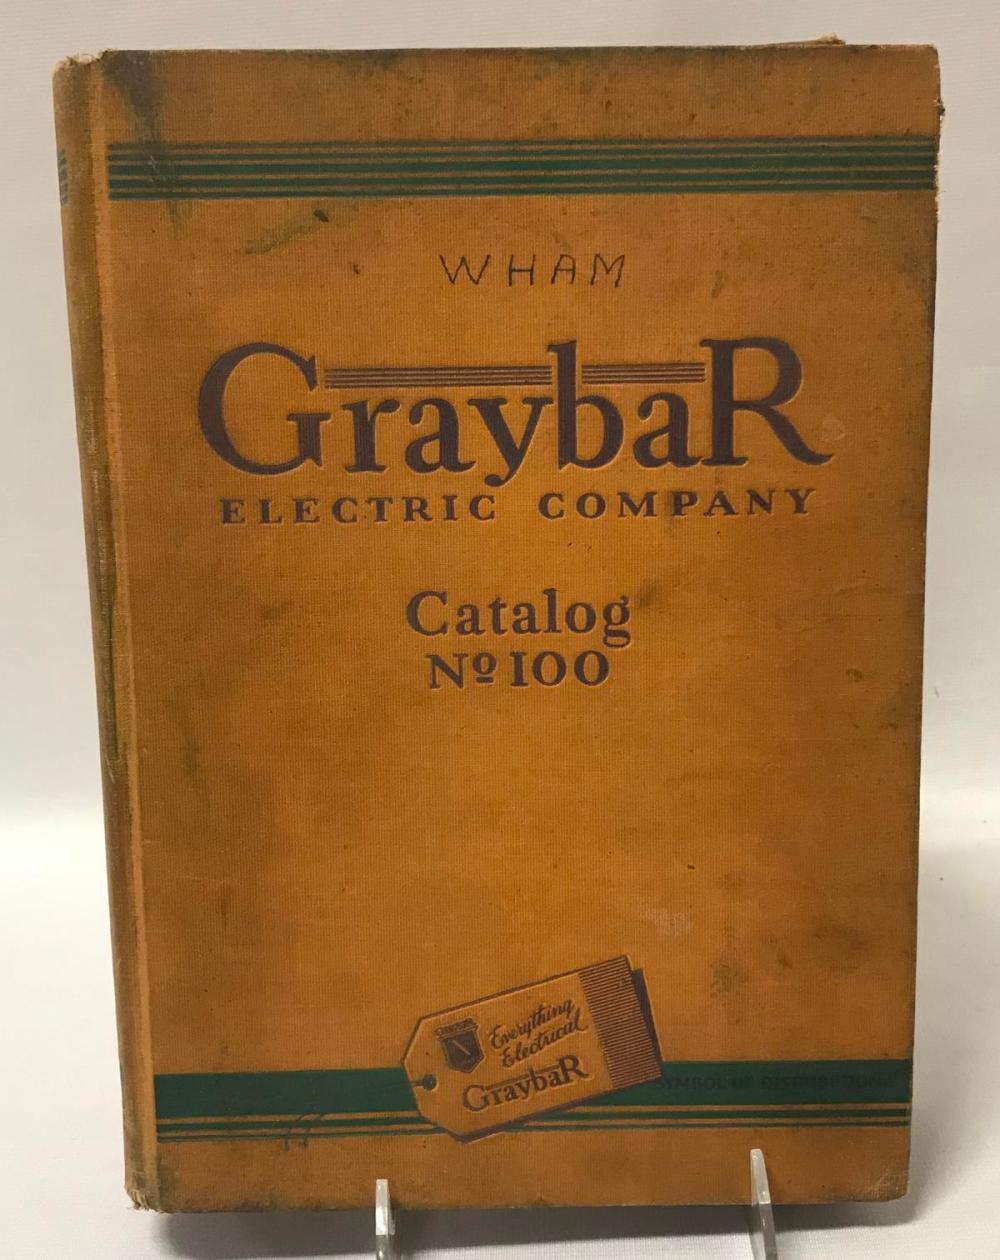 1929 GrayBar Electric Company Catalog No. 100